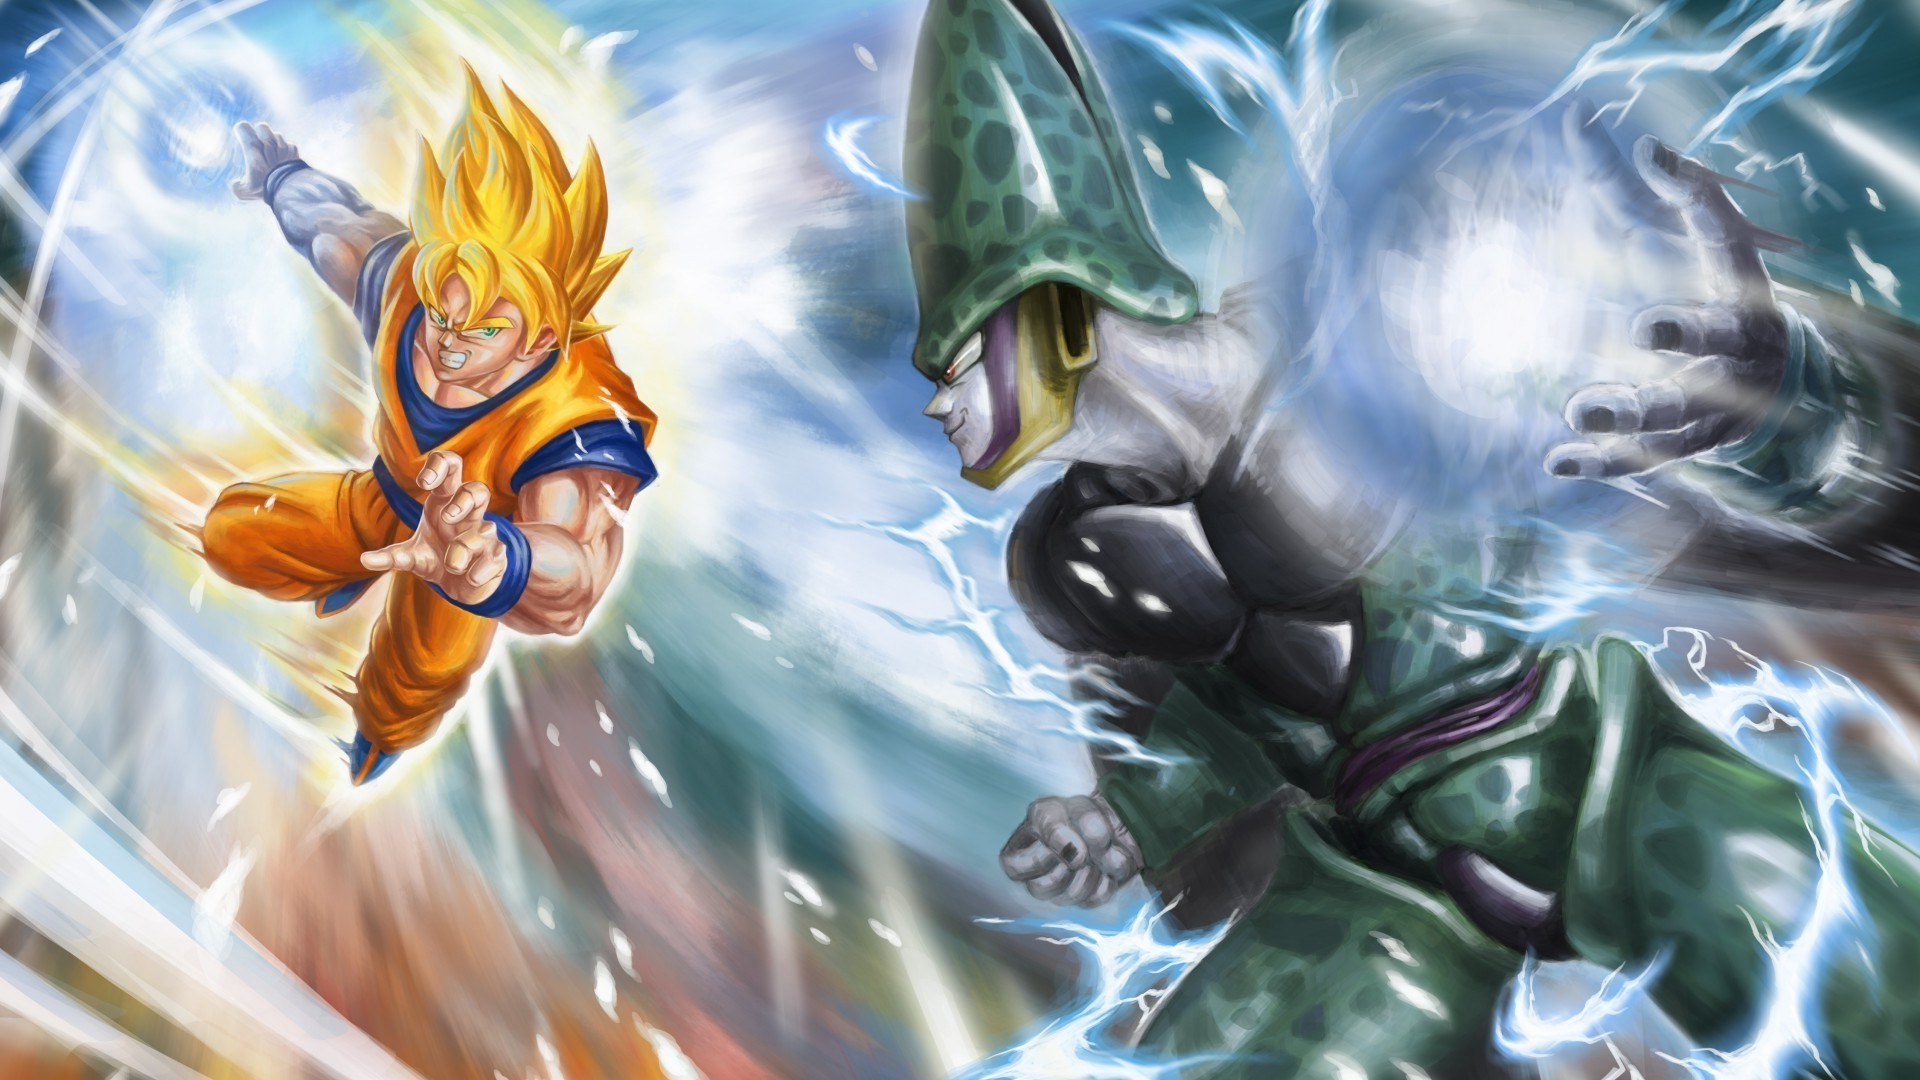 Dbz hd wallpaper 1920x1080 63 images - 3d wallpaper of dragon ball z ...